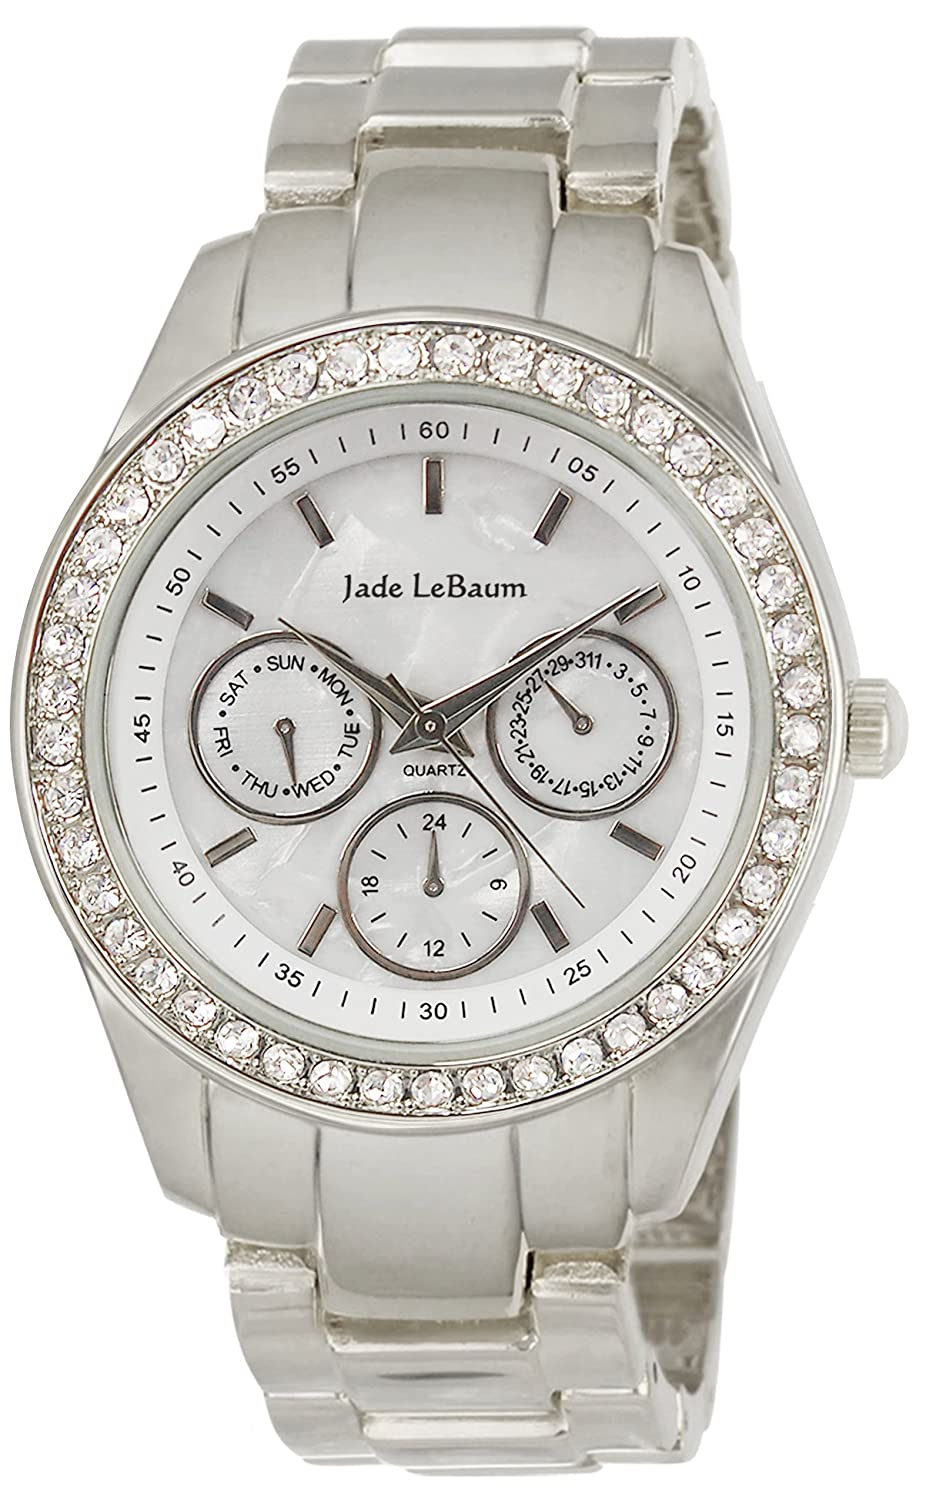 Amazon.com: Womens Bracelet Watch Rhinestone Accented in Silver-Tone Reloj de Damas Jade LeBaum - JB202730G: Jade LeBaum: Watches